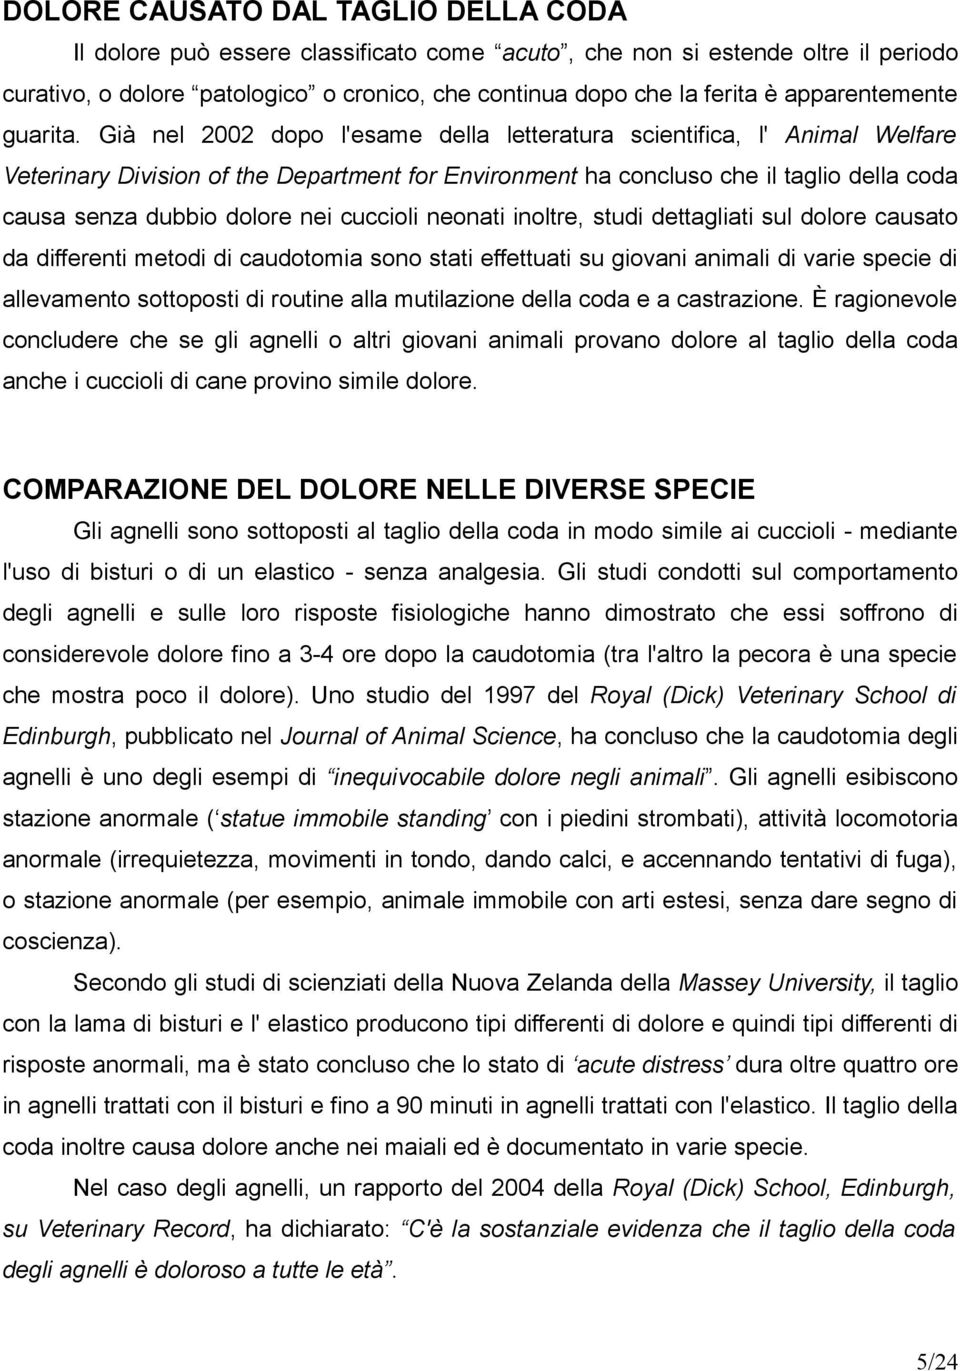 Già nel 2002 dopo l'esame della letteratura scientifica, l' Animal Welfare Veterinary Division of the Department for Environment ha concluso che il taglio della coda causa senza dubbio dolore nei